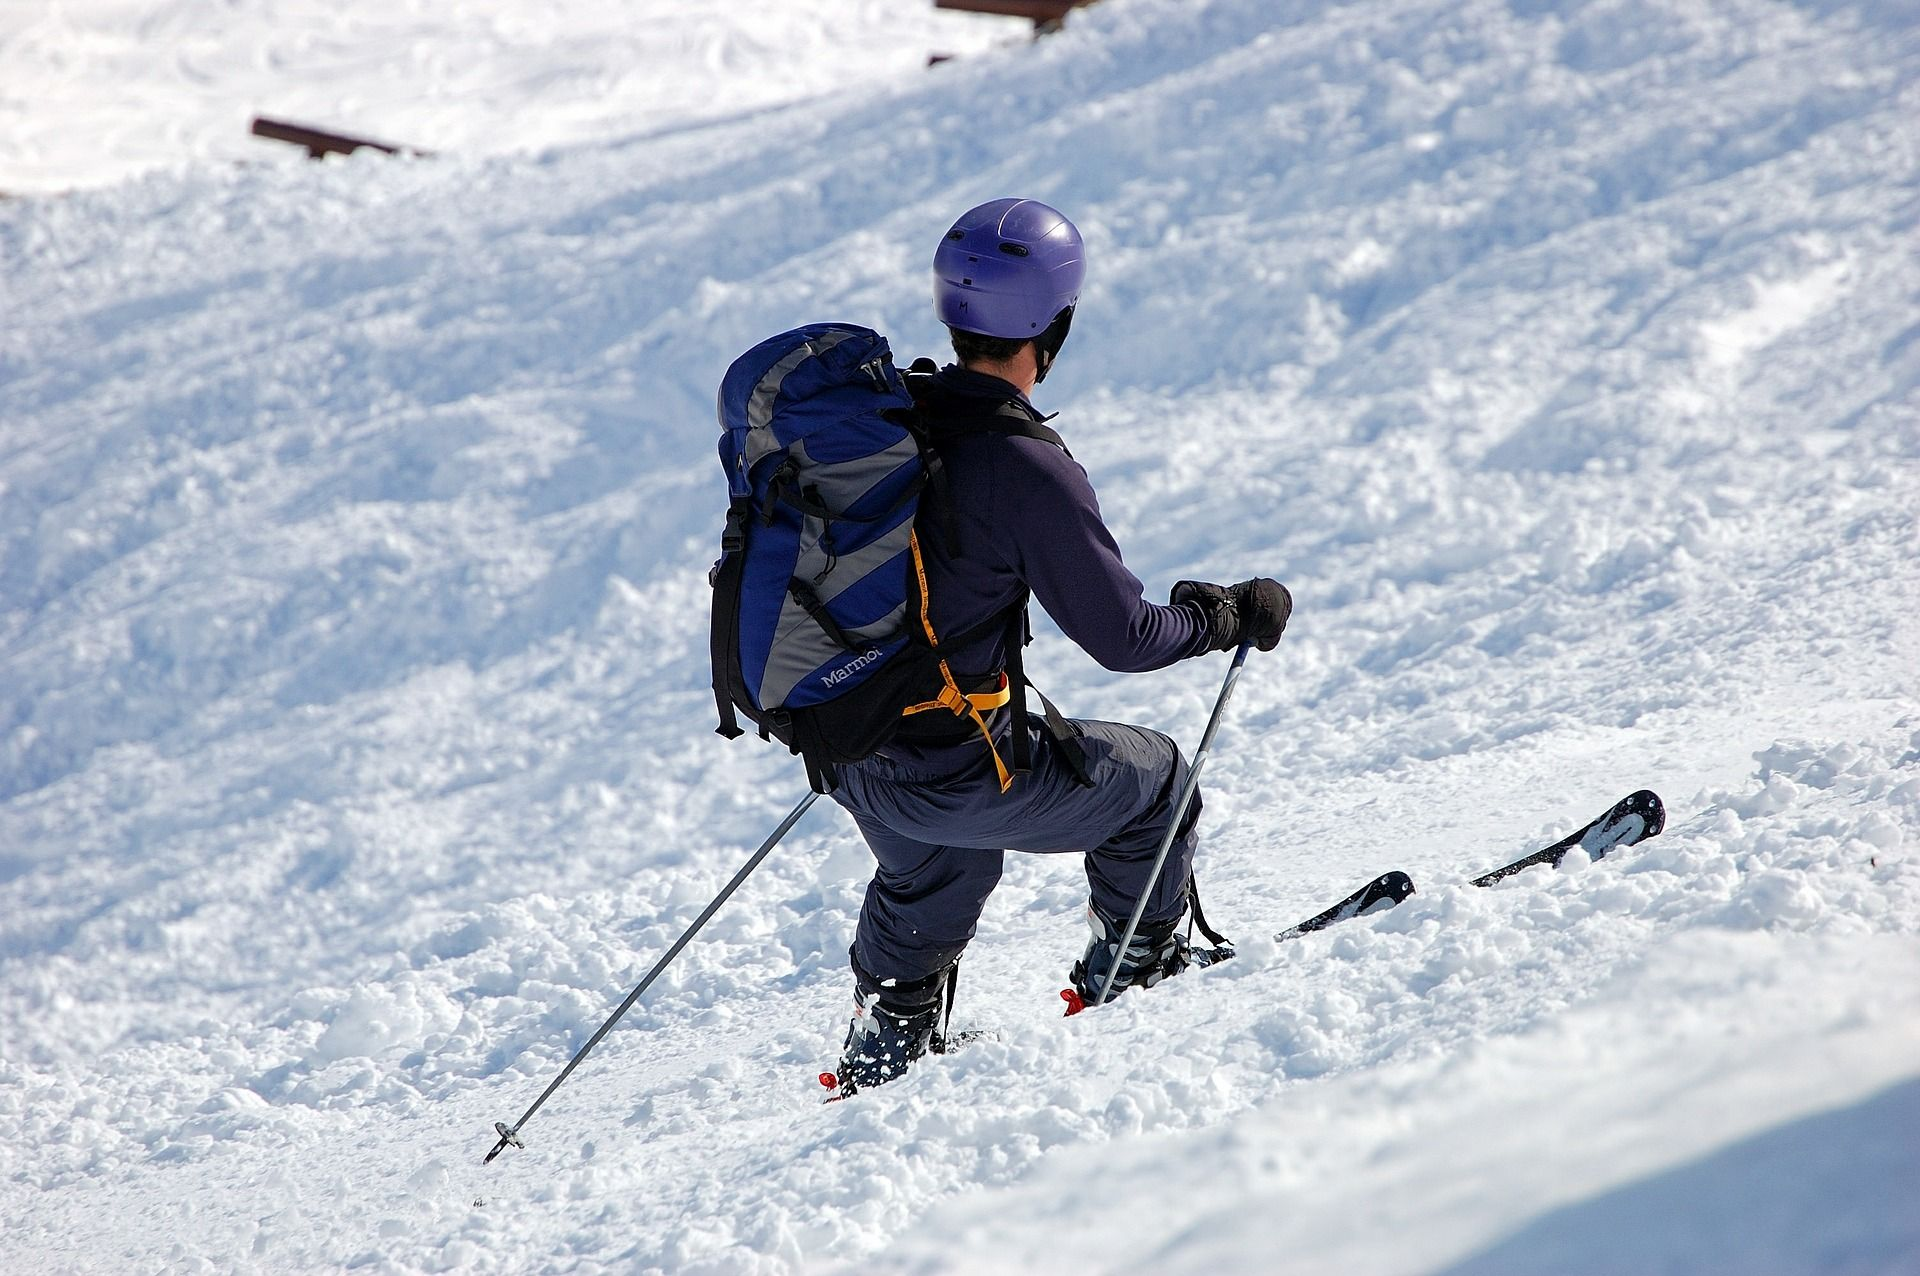 Benefits Of Using A Backcountry Ski Backpack The House Ski Inspiration Best Skis Skiing